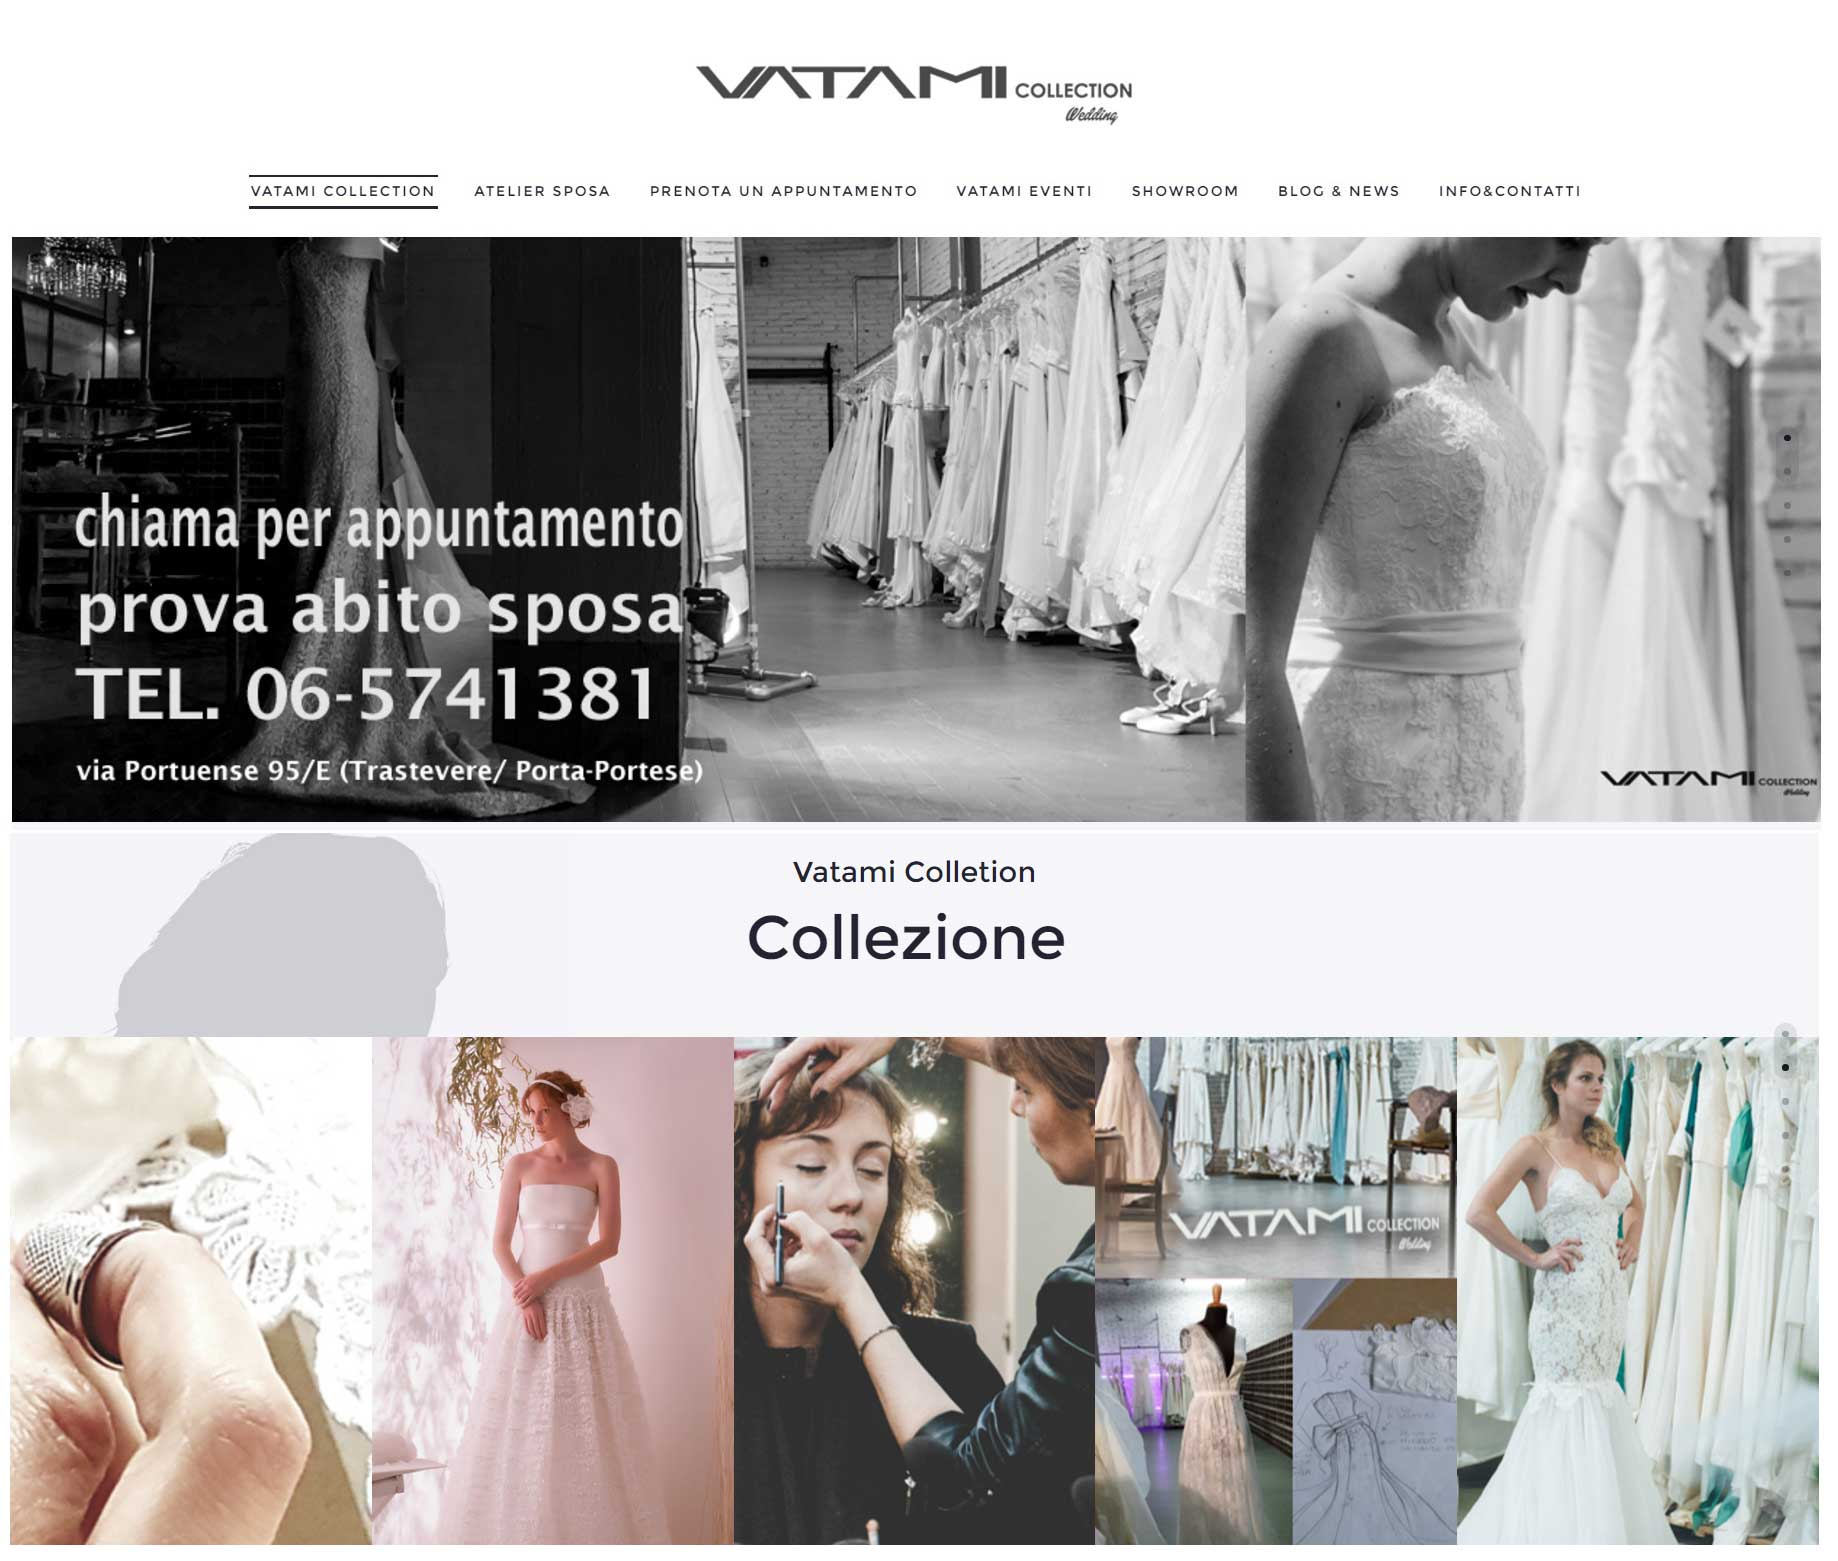 Vatami Collection